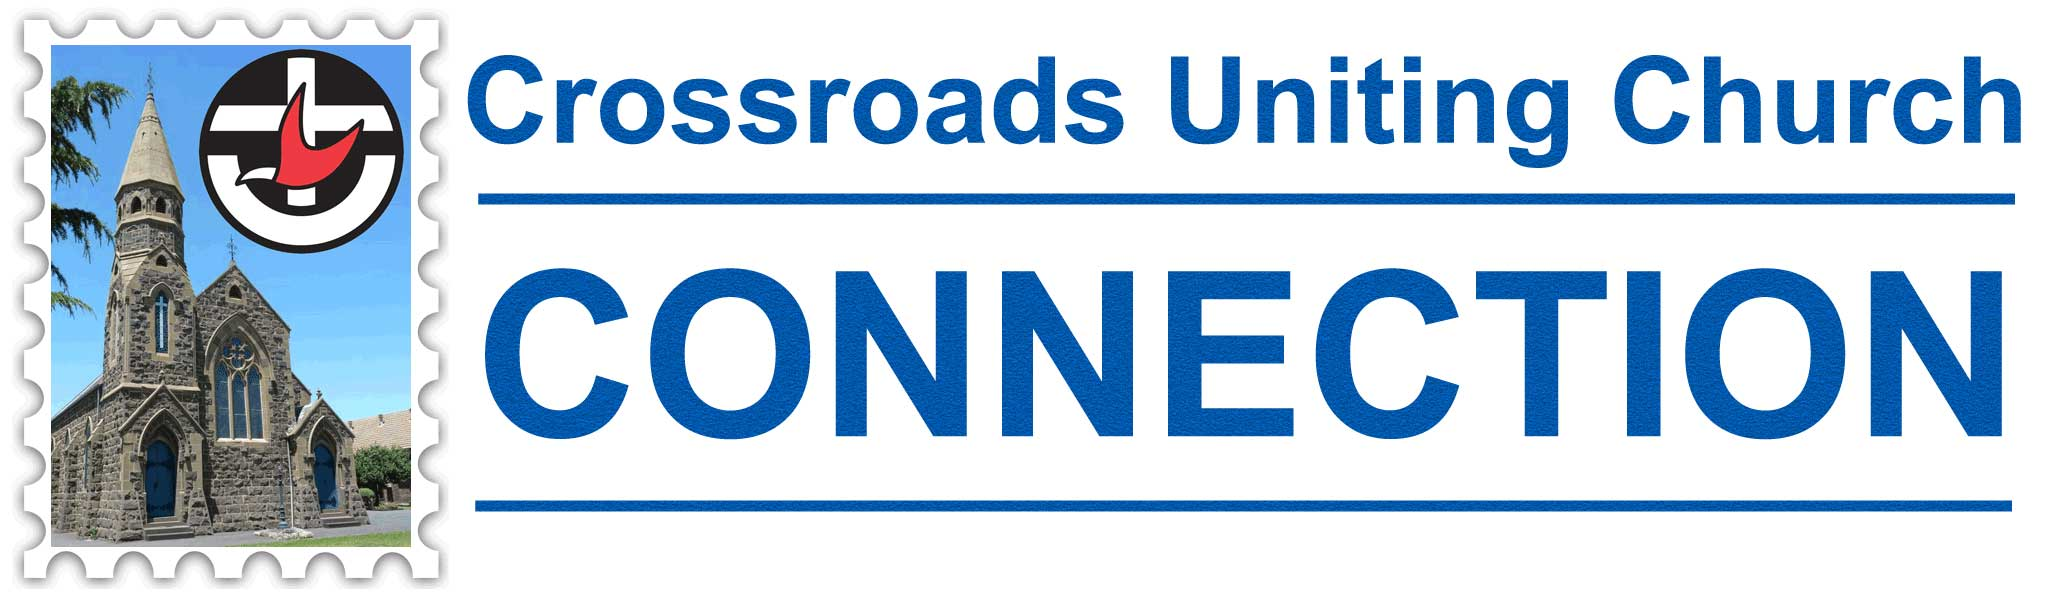 Crossroads Connection Newsletter